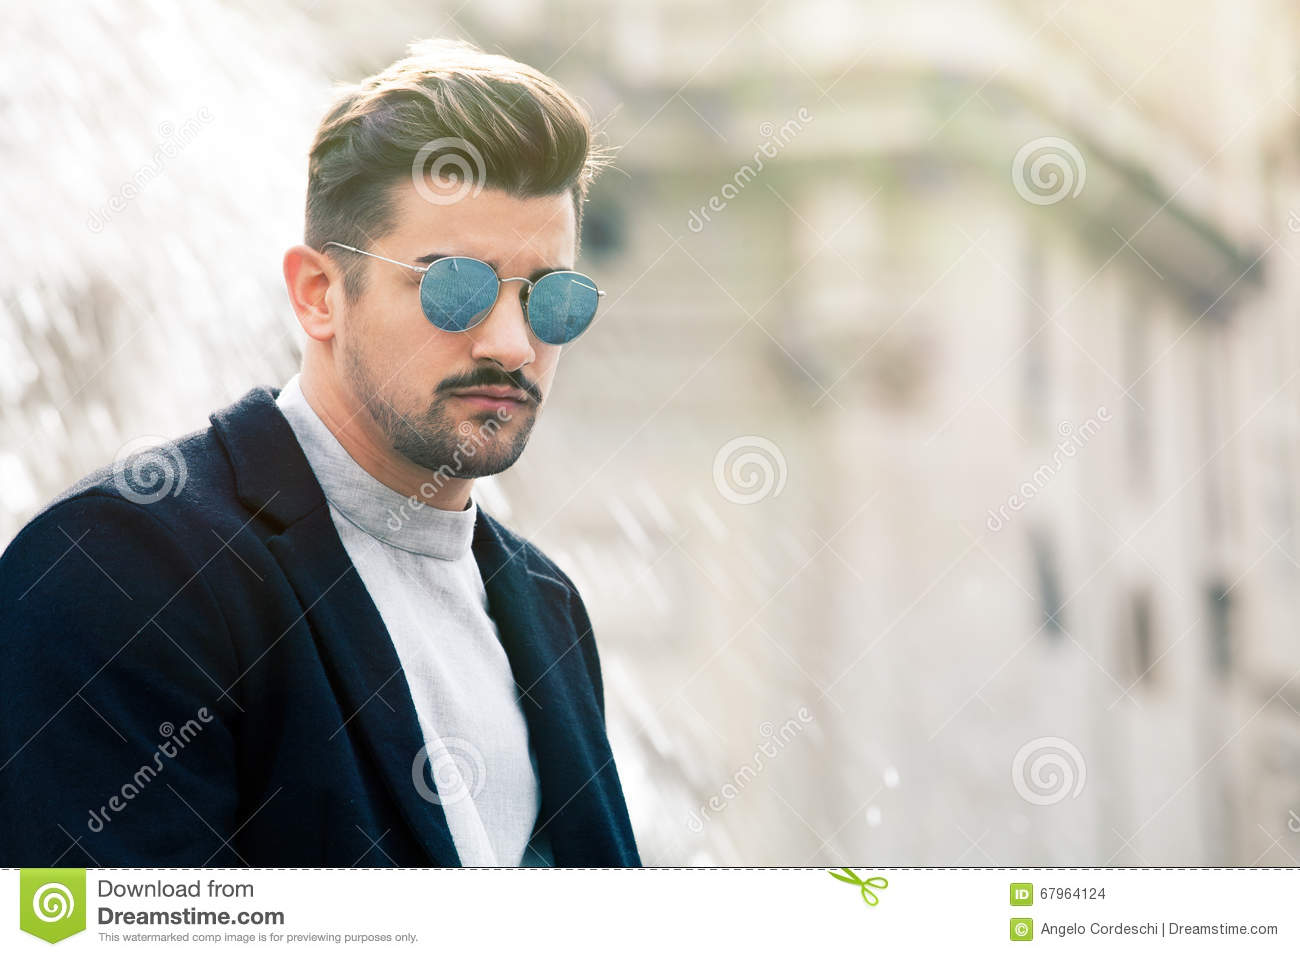 8f32e1aae3e8 A charming young stylish man with sunglasses. Confident attitude with  setting in the historic city of Rome